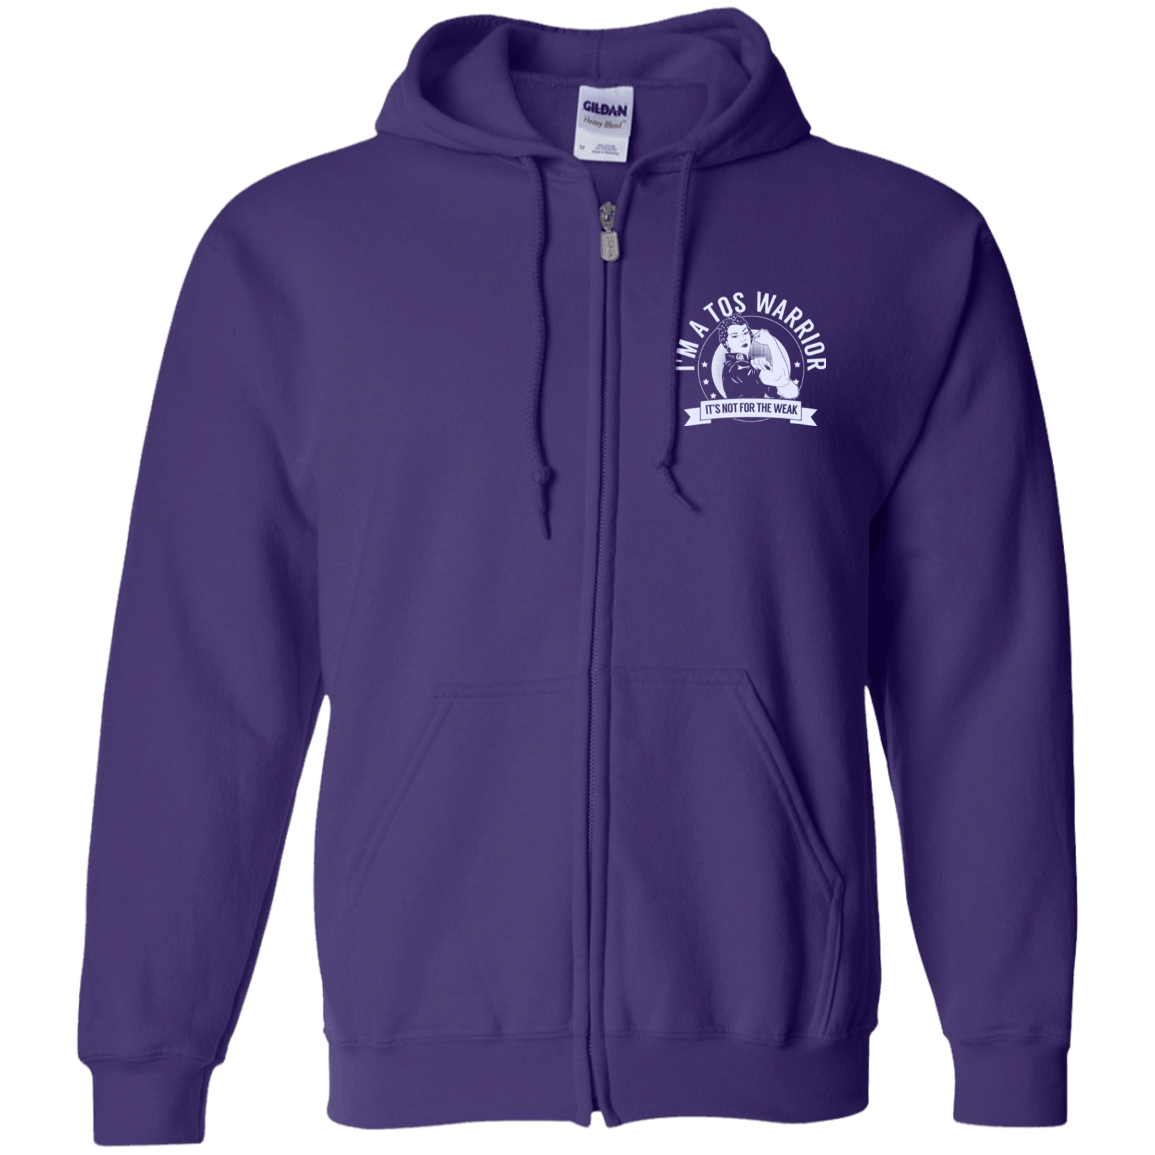 Sweatshirts - Thoracic Outlet Syndrome - TOS Warrior NFTW Zip Up Hooded Sweatshirt